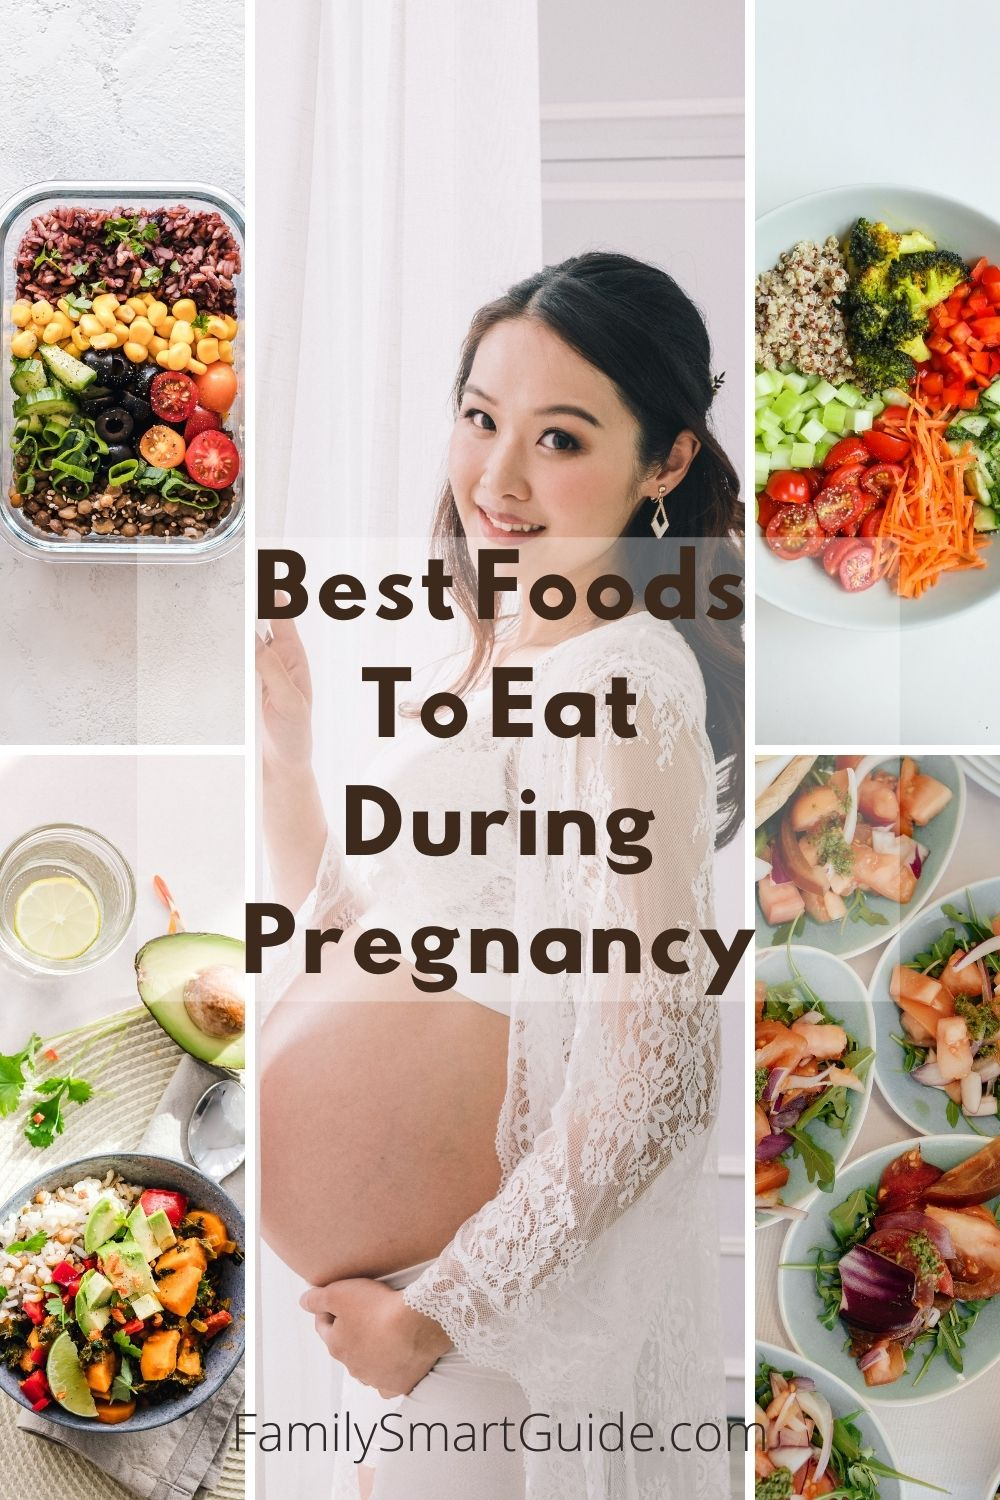 Pregnancy Diet What Foods to Eat During Pregnancy